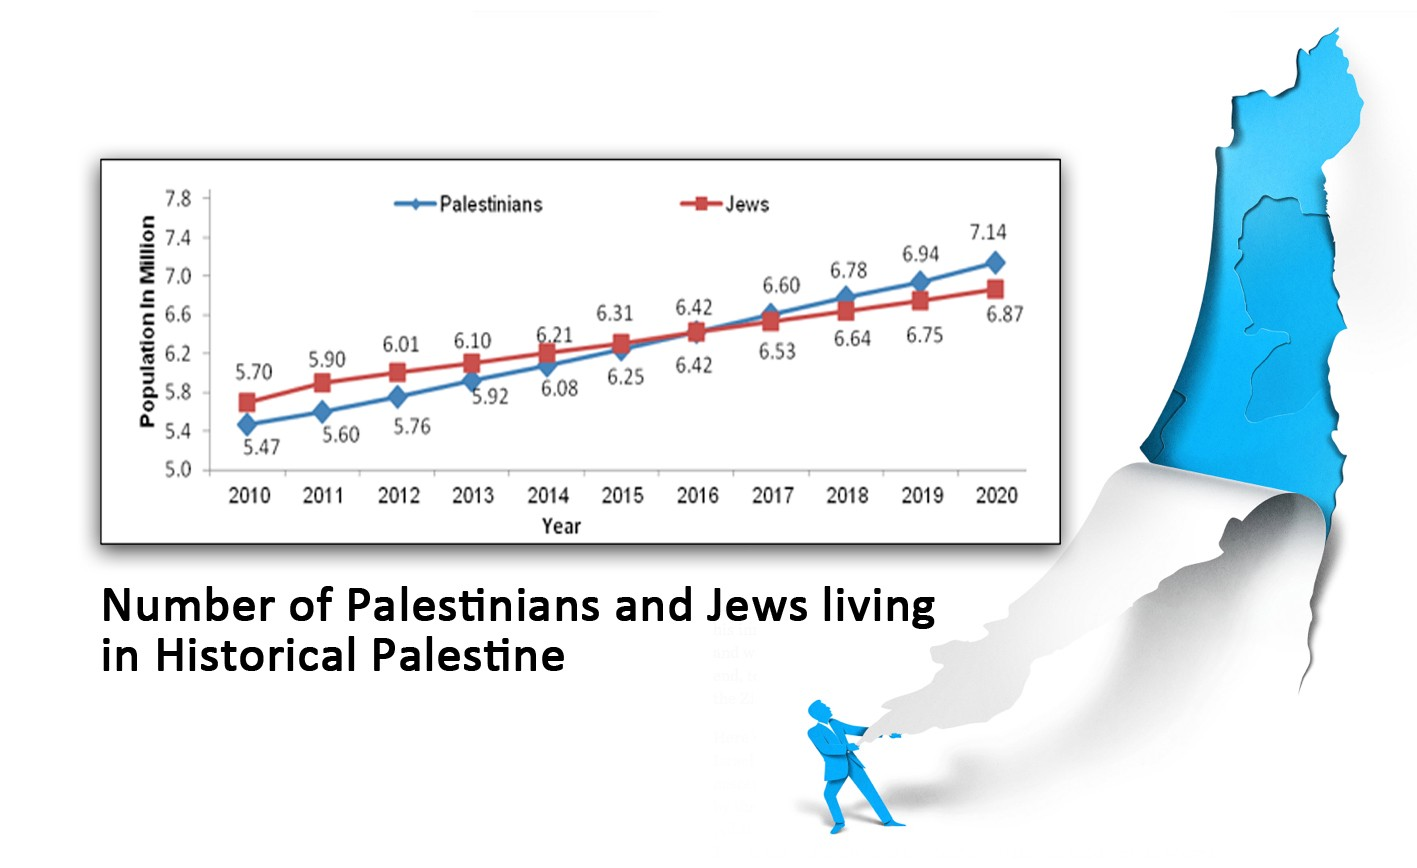 Census: Palestinians to outnumber Jews in historic Palestine by 2016